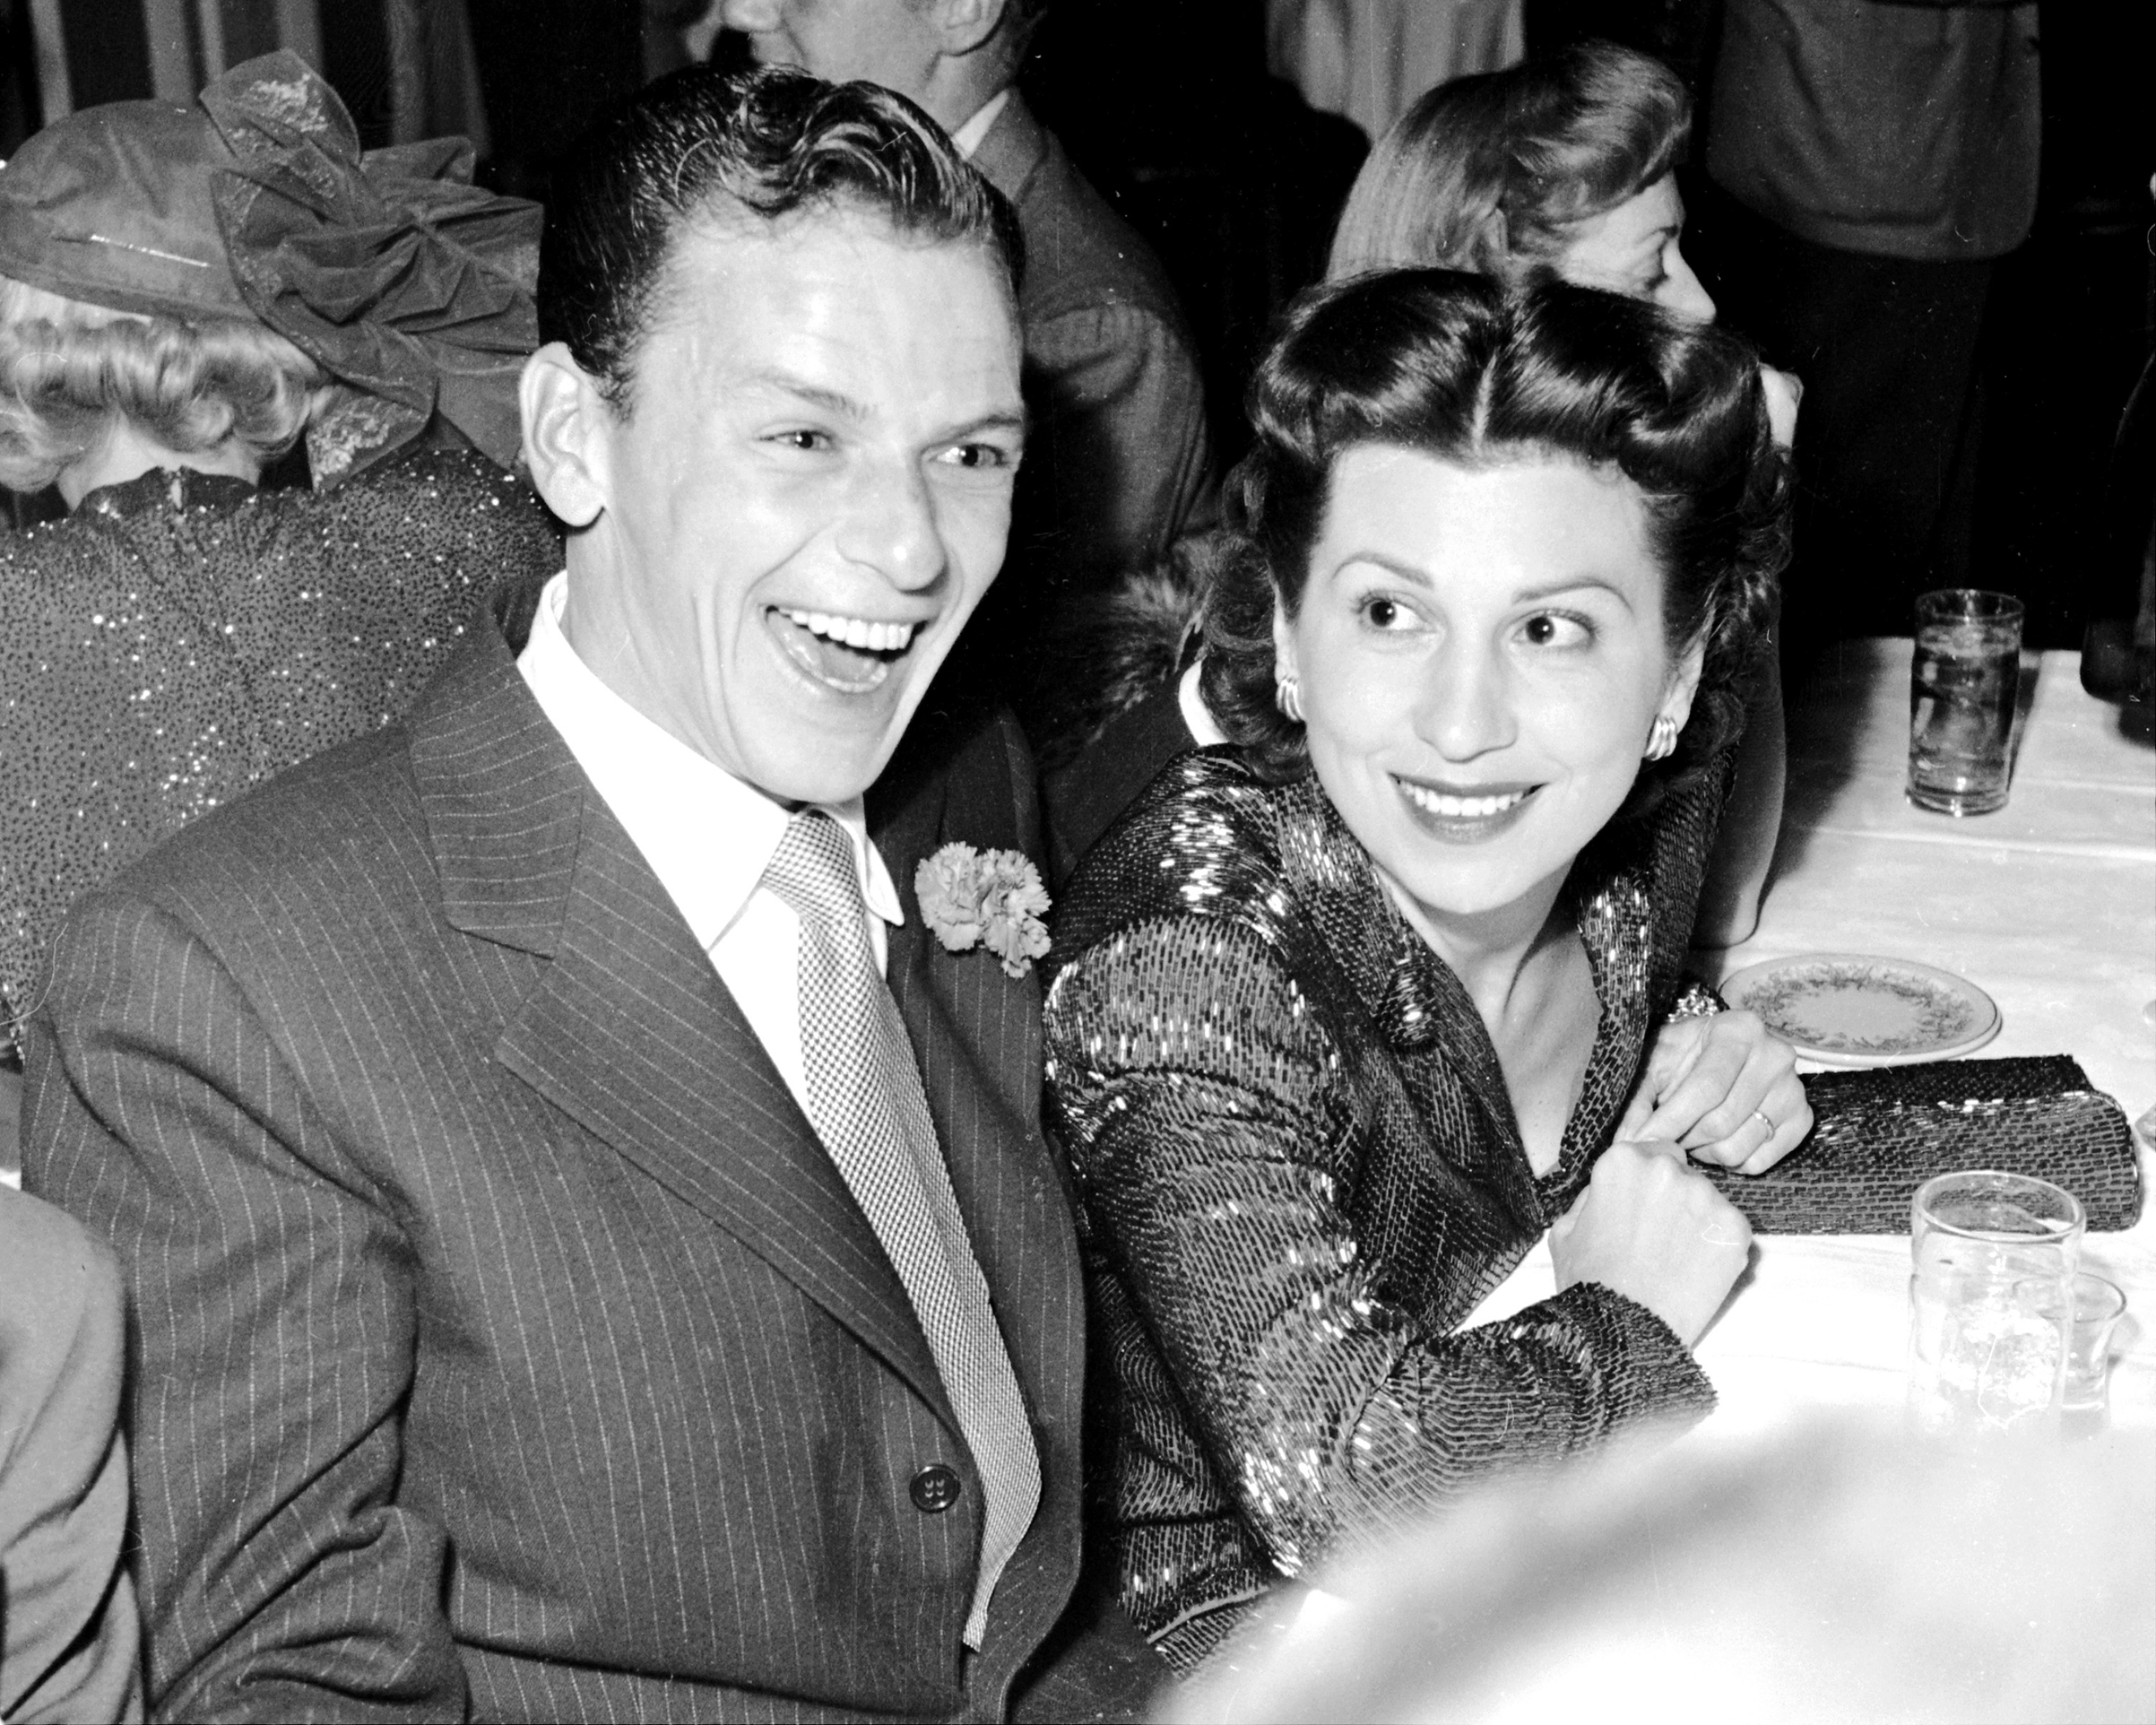 Frank Sinatra and Nancy Barbato Sinatra at the Mocambo in Hollywood on Jan. 11, 1949; they were married from 1939 to 1951.